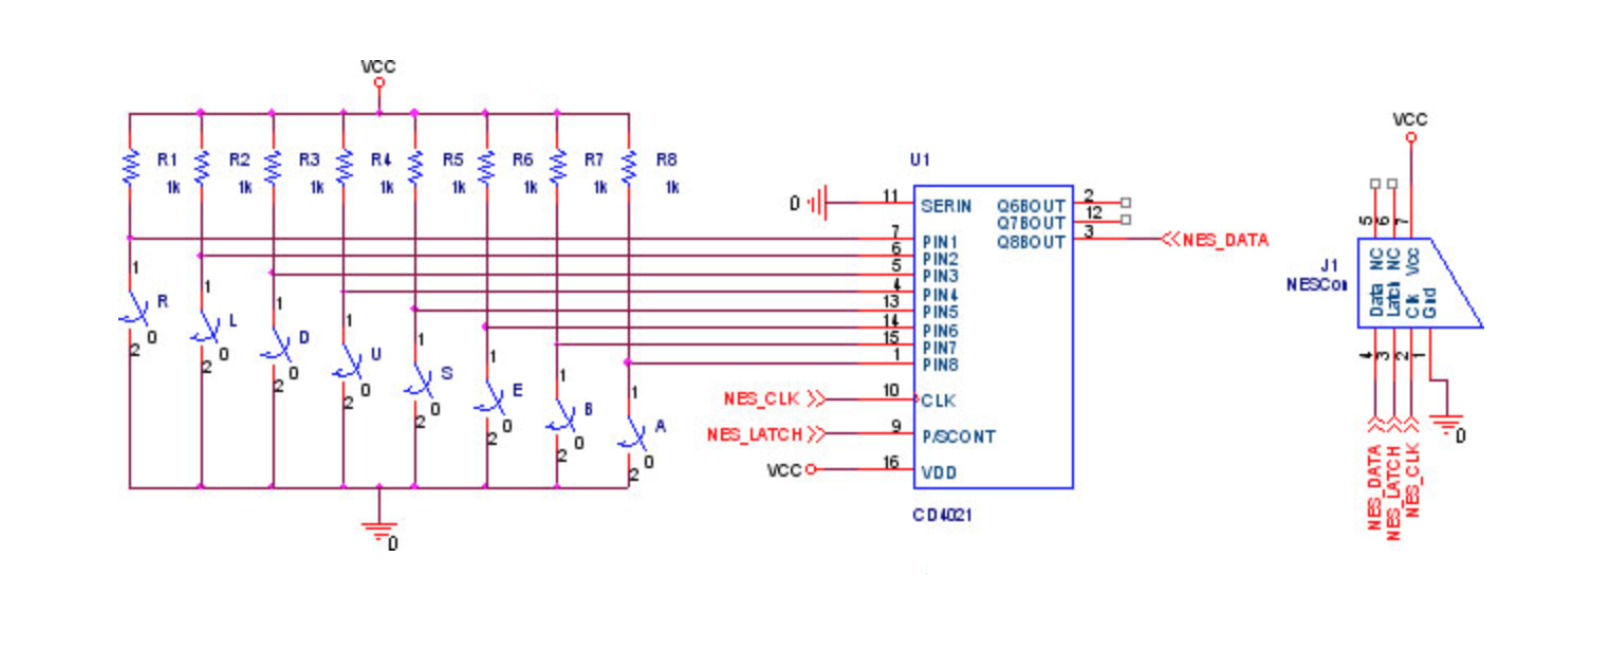 Ece 4760 Final Project Led Cube With Snakego Figure 2 Schematic Of The Driver Reference Design 9 Nes Controller Schematics